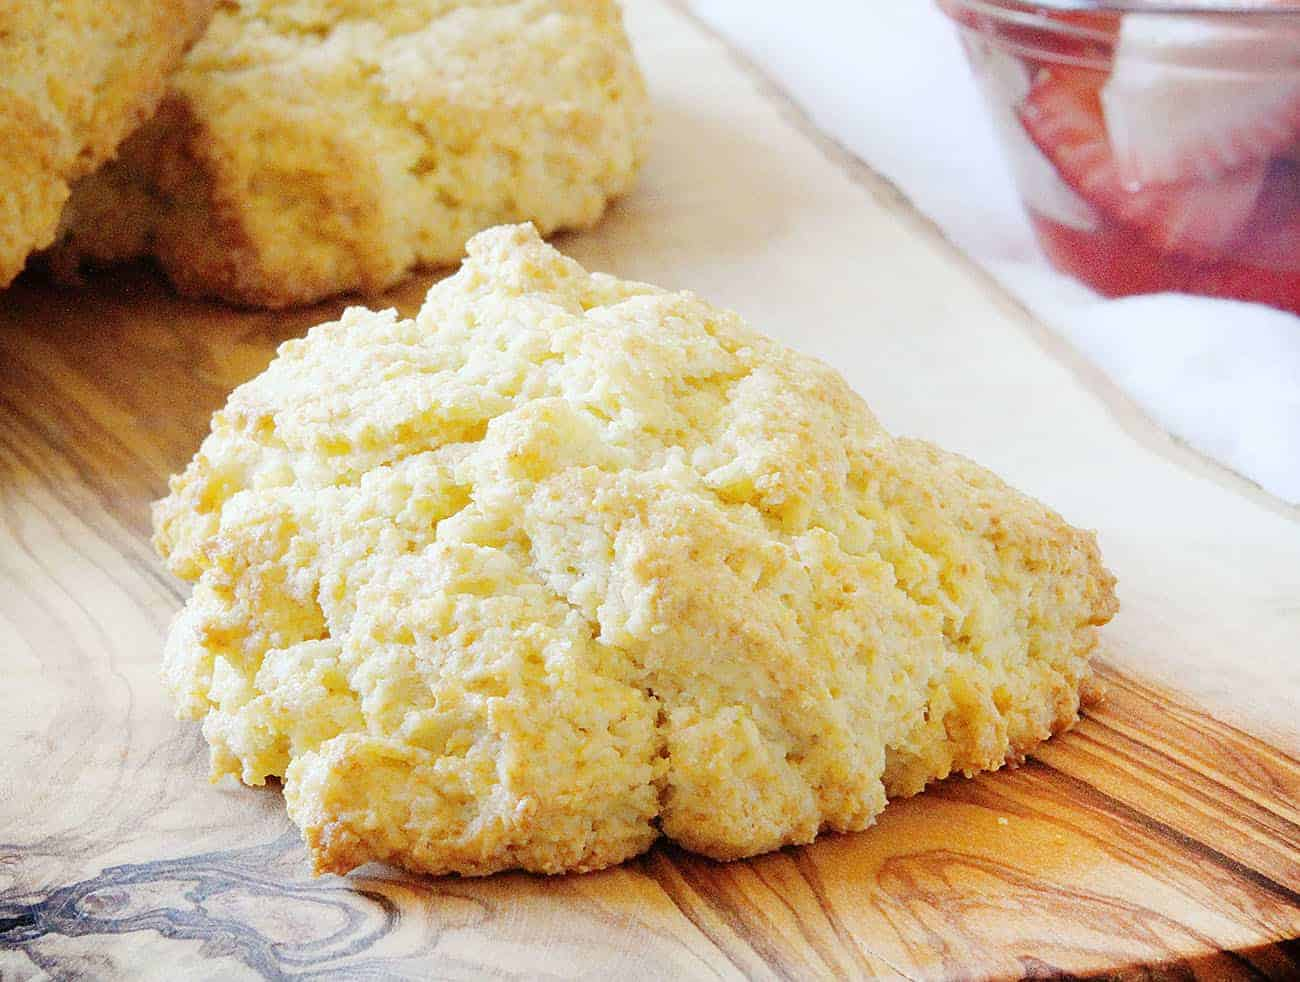 Tequila Strawberry Shortcake - Homemade Cornmeal Biscuit